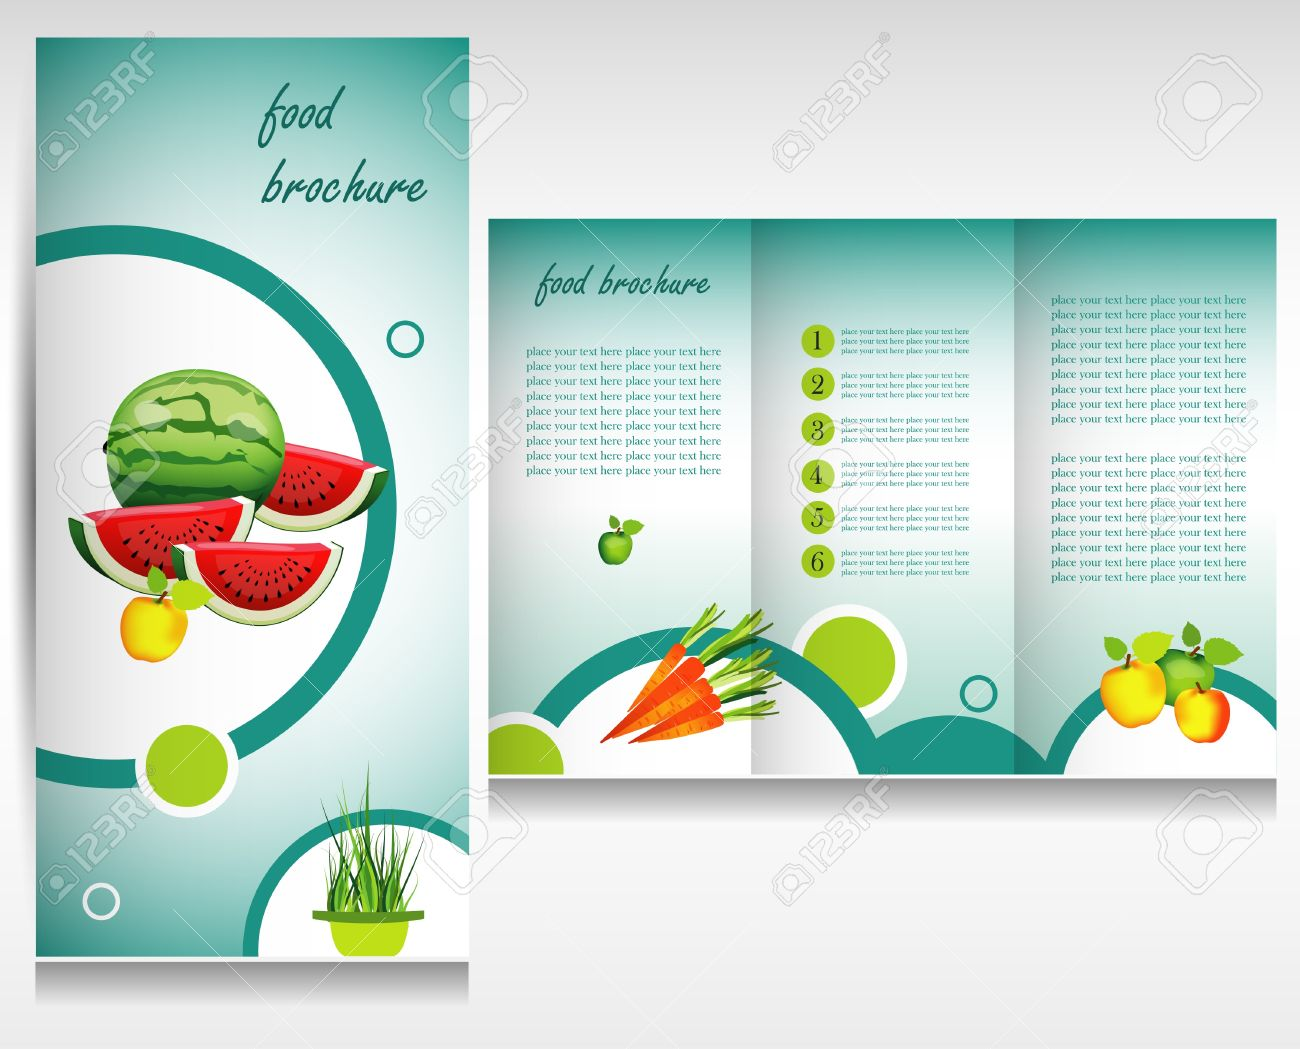 Food Brochure Design Concept Royalty Free Cliparts, Vectors, And ...